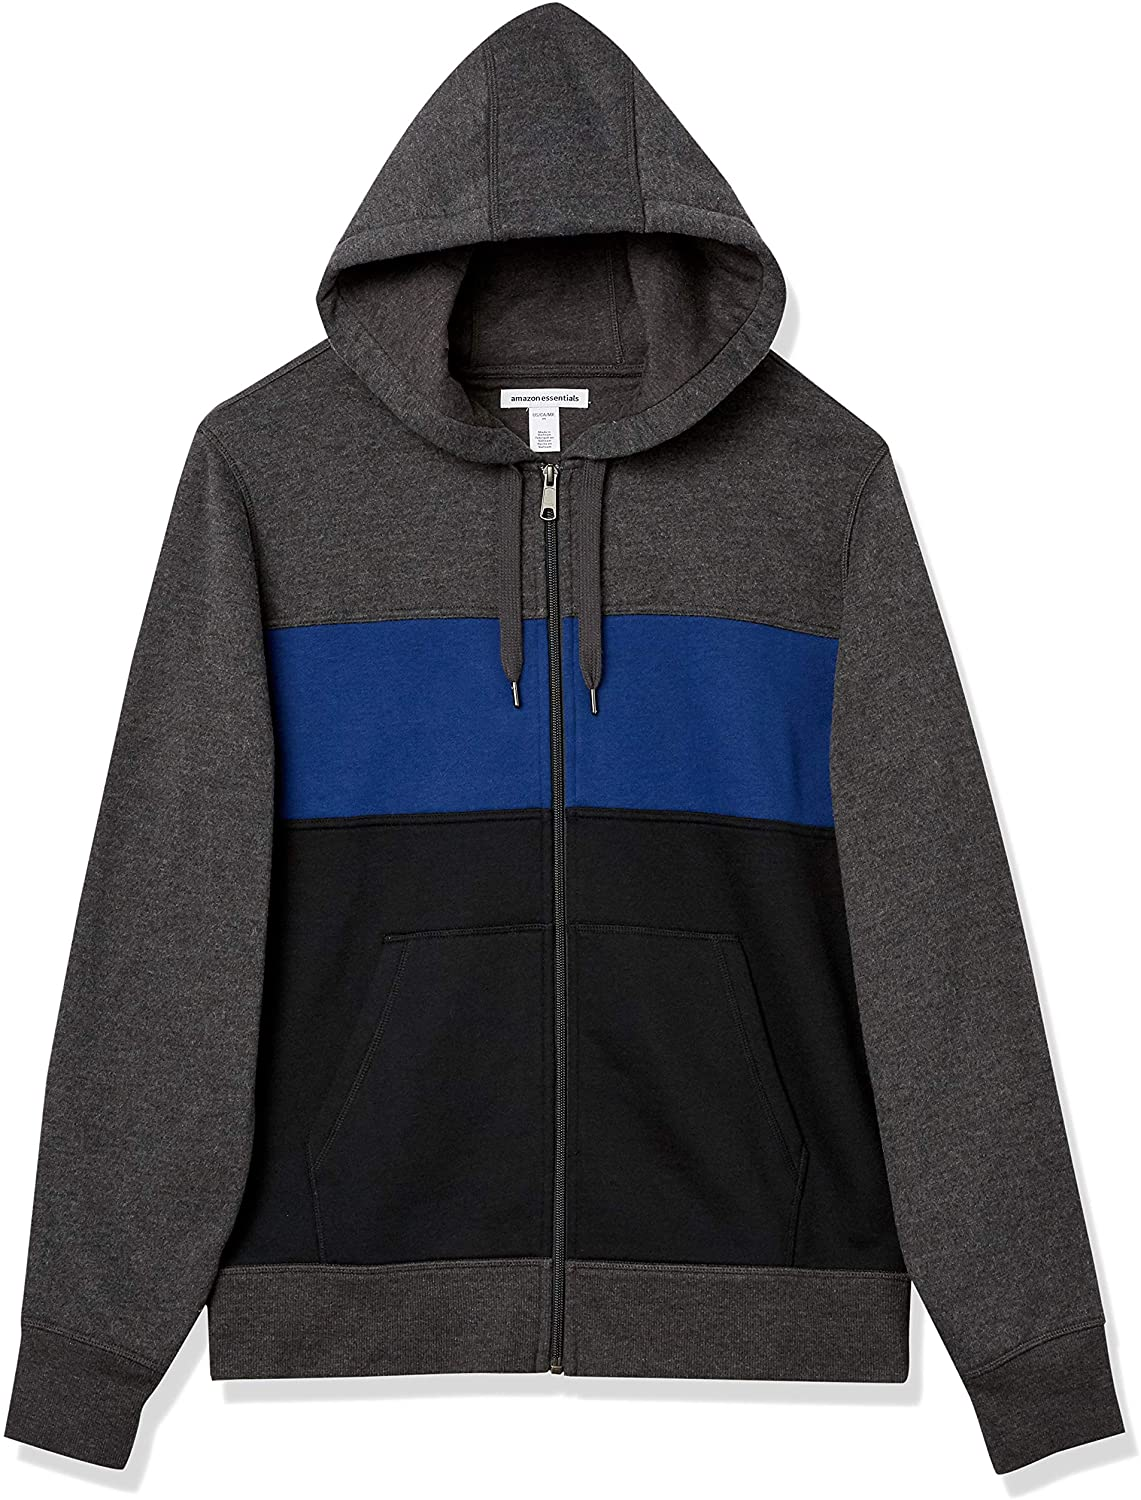 Amazon Essentials Men's Full-Zip Hooded Fleece Sweatshirt in color blocked with dark grey, blue and black